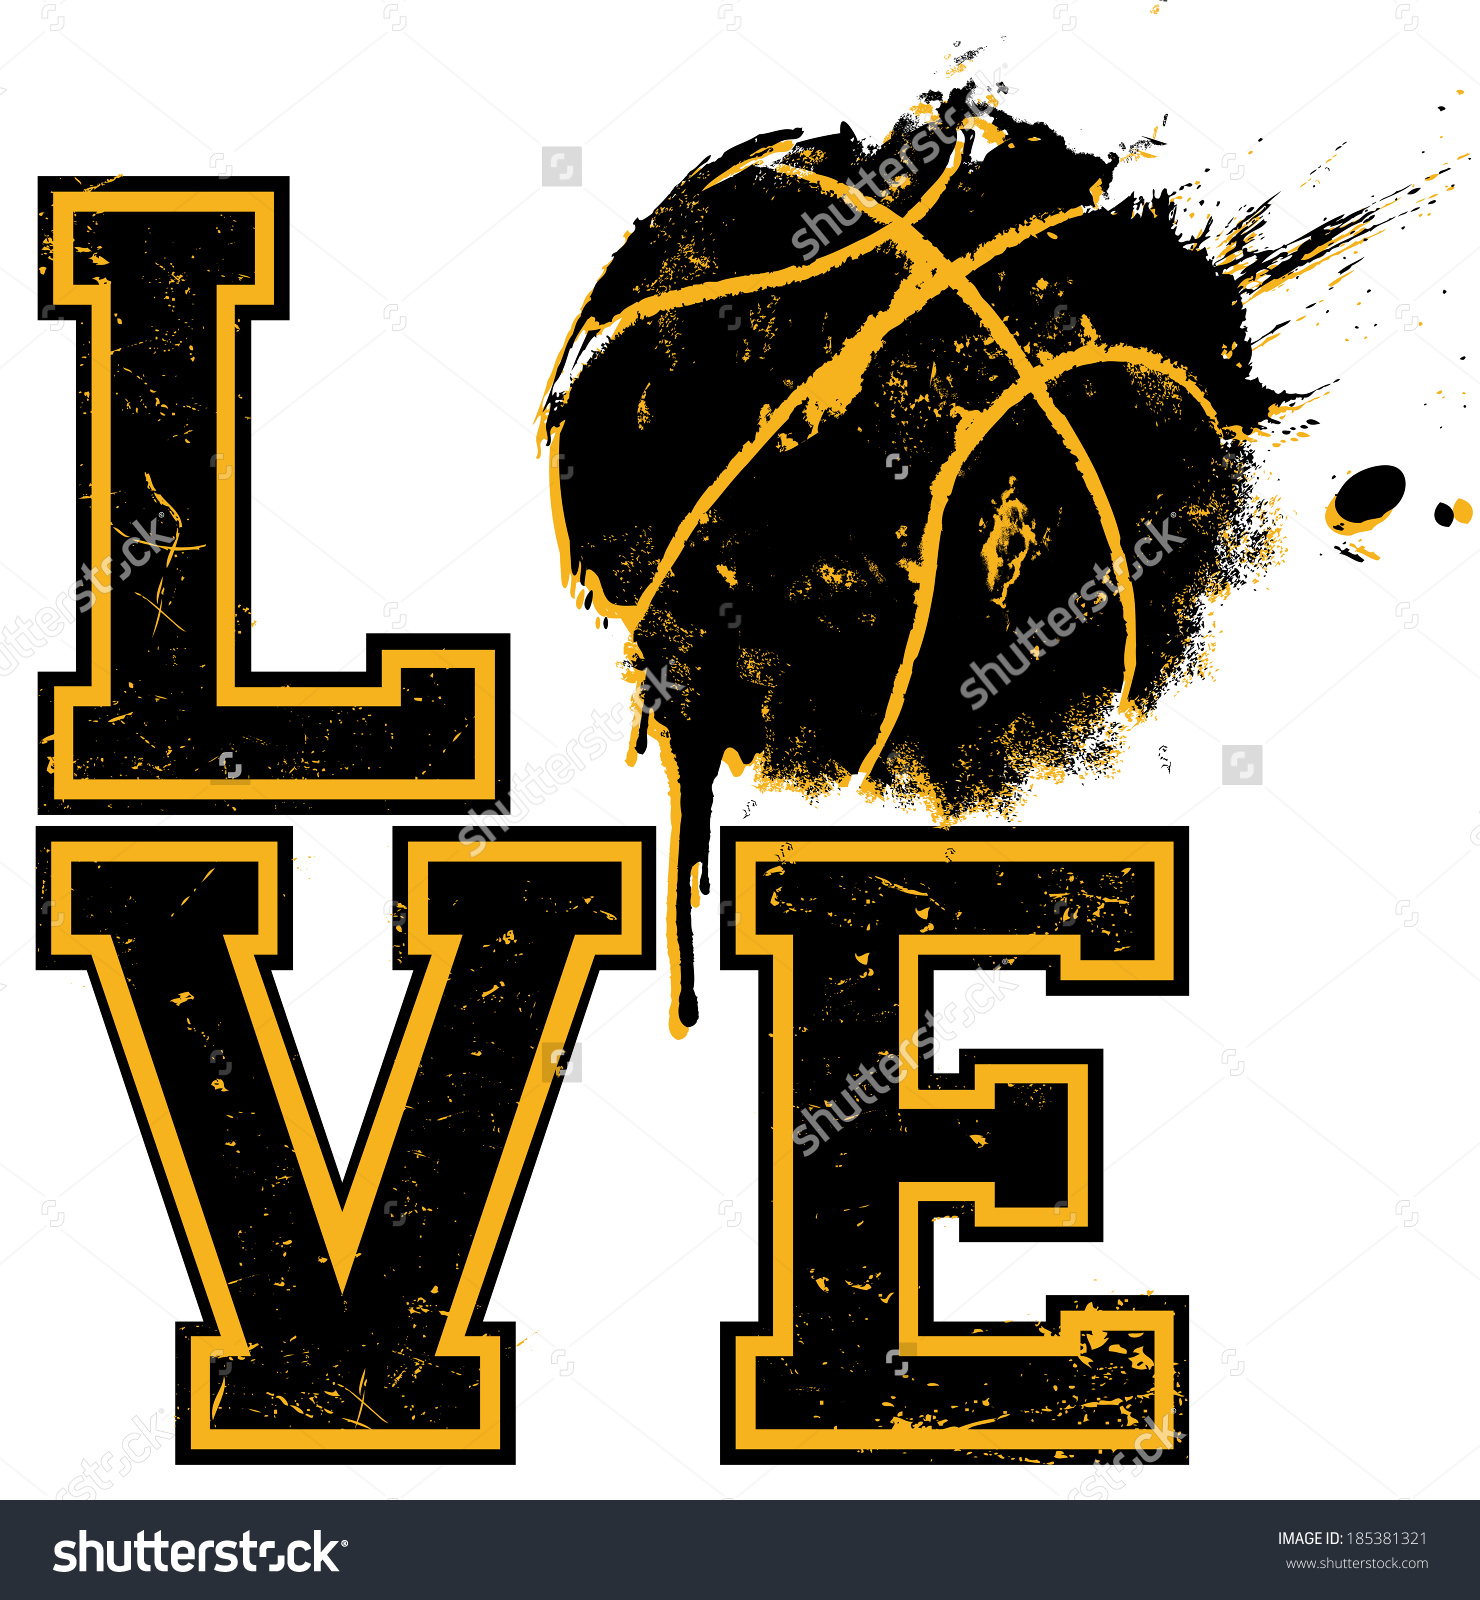 Love Basketball Wallpapers